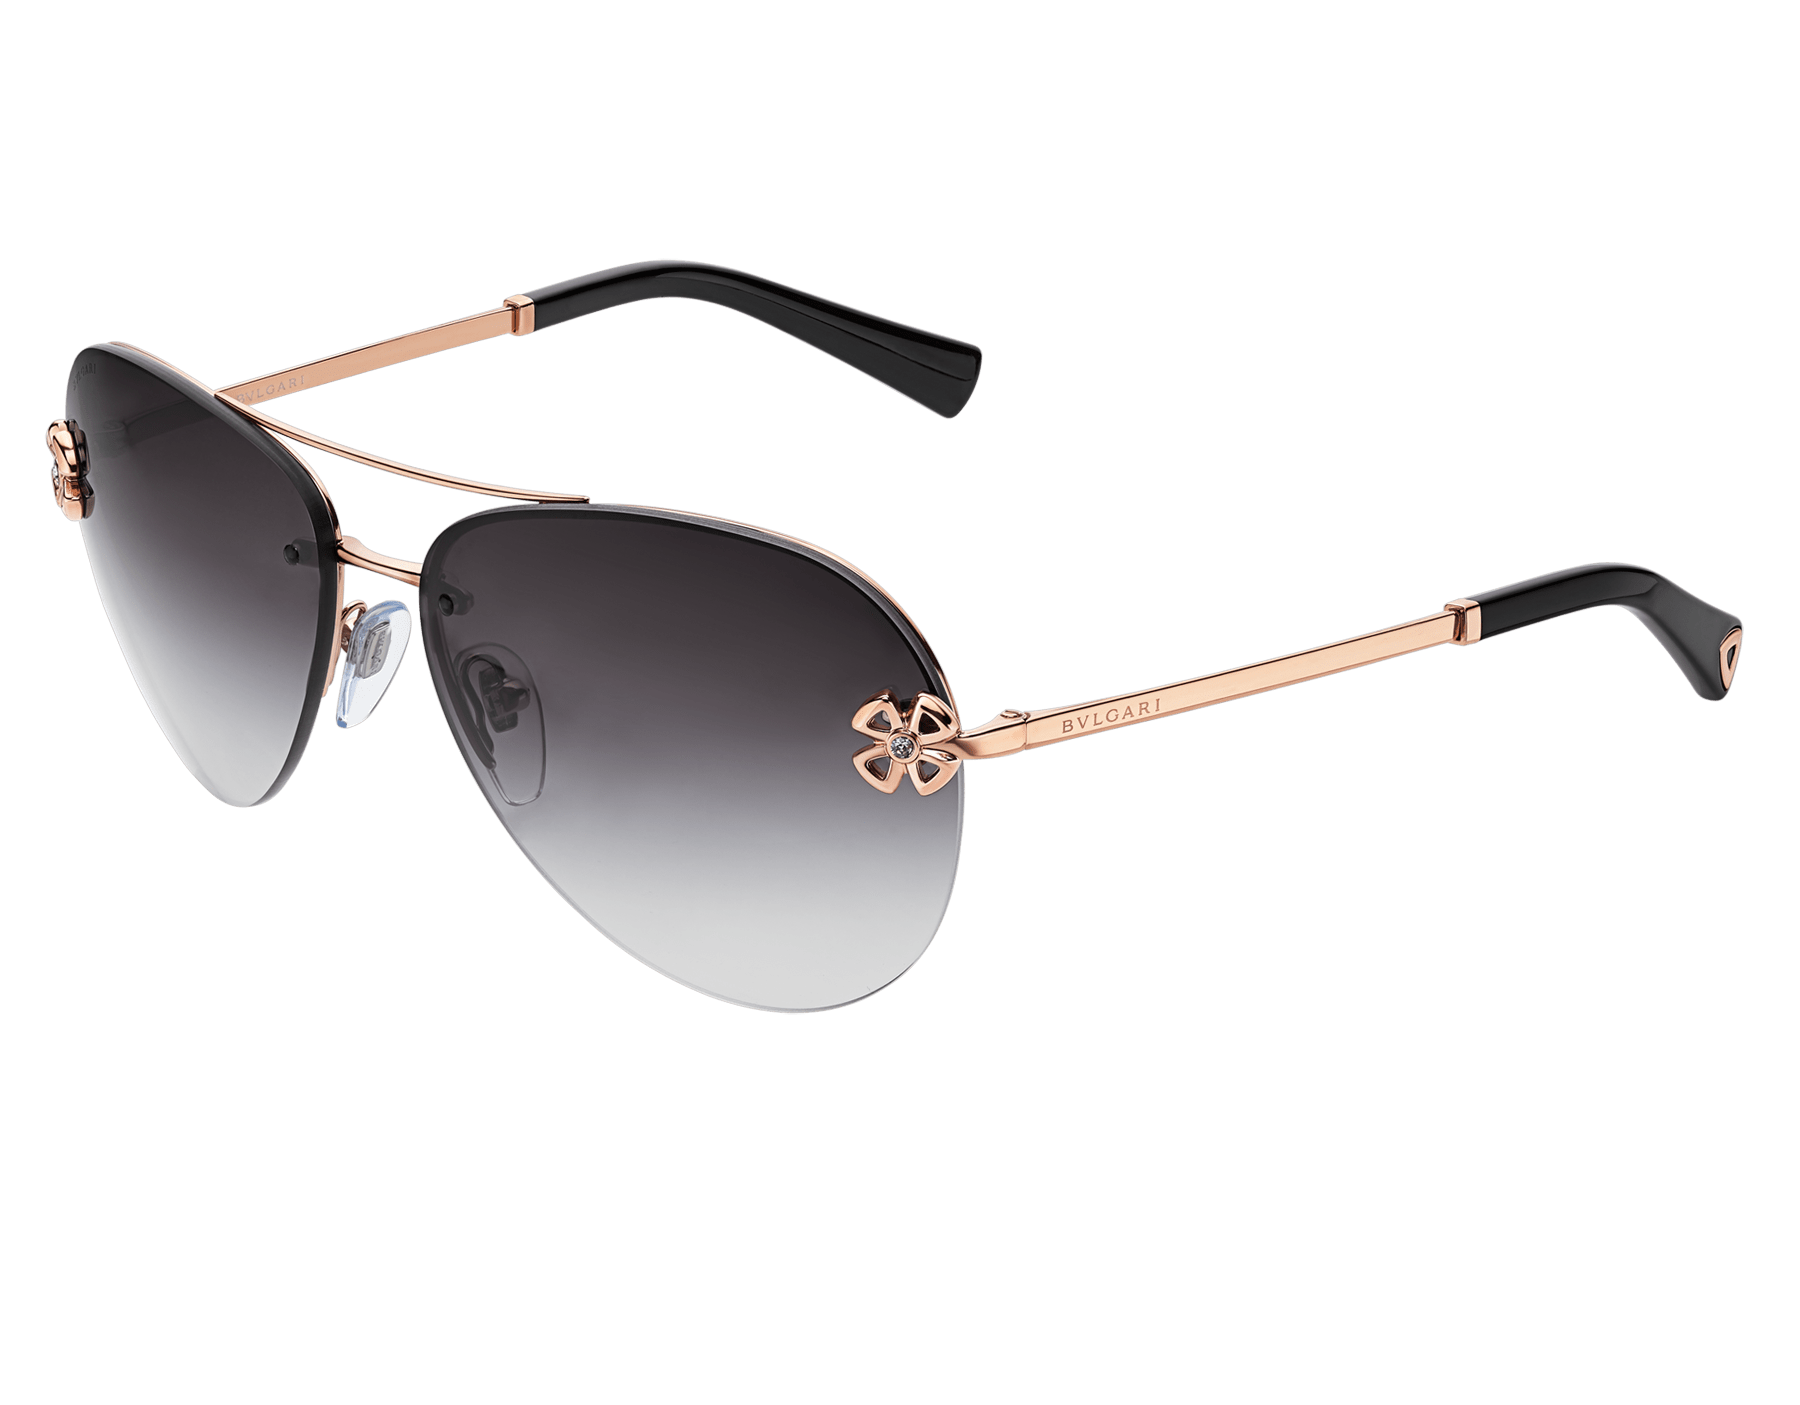 Bulgari Fiorever double bridge aviator sunglasses. 903999 image 1